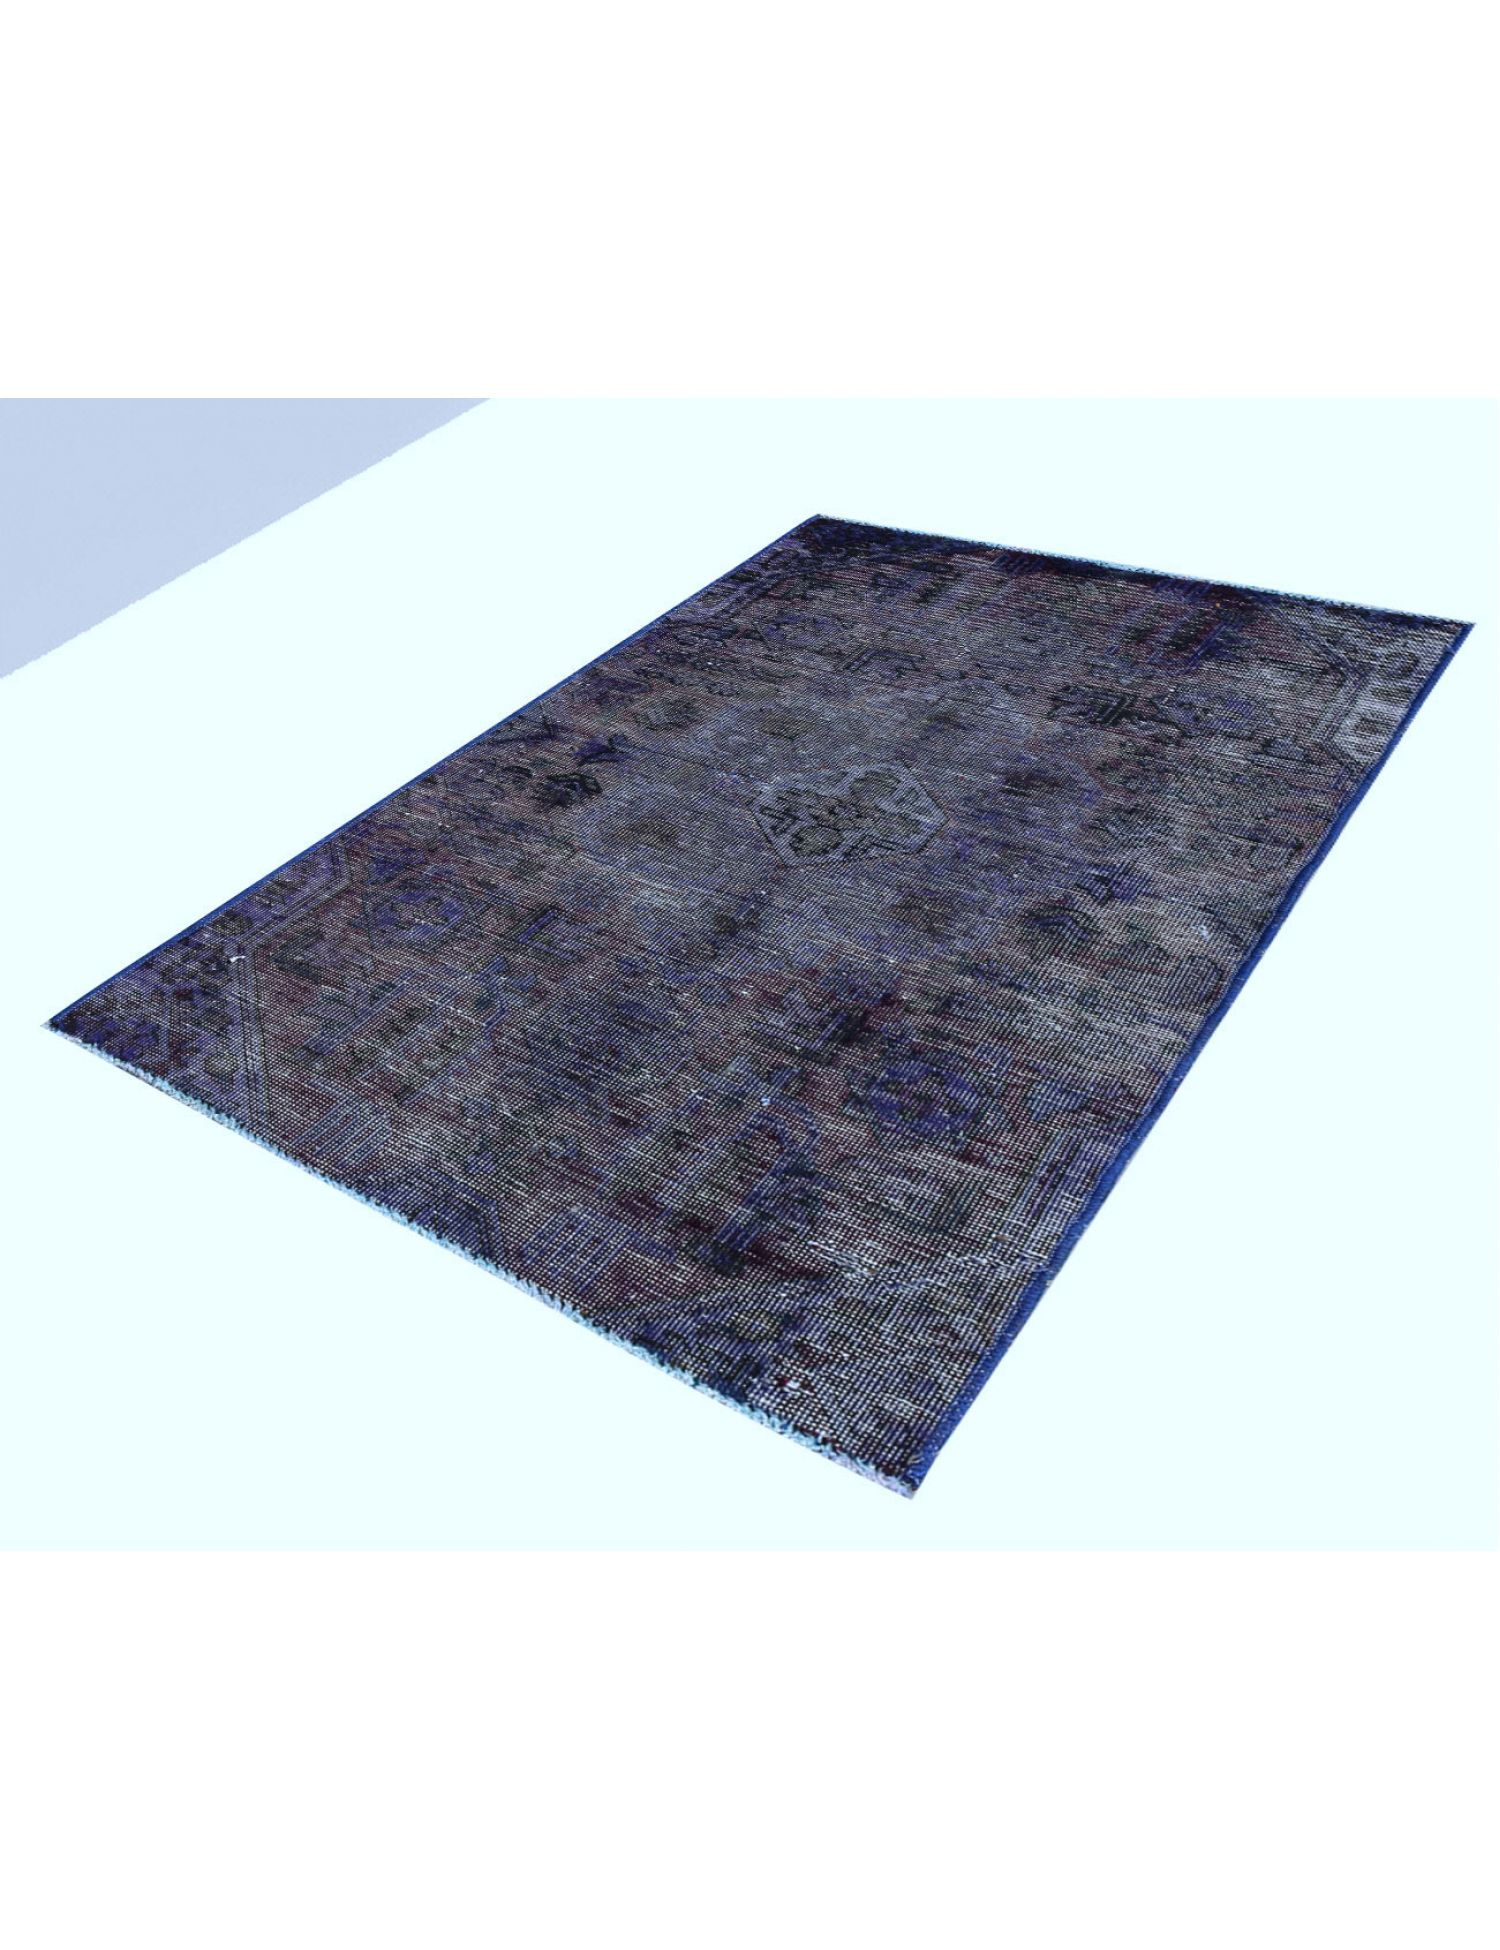 Vintage Carpet  blue <br/>137 x 80 cm